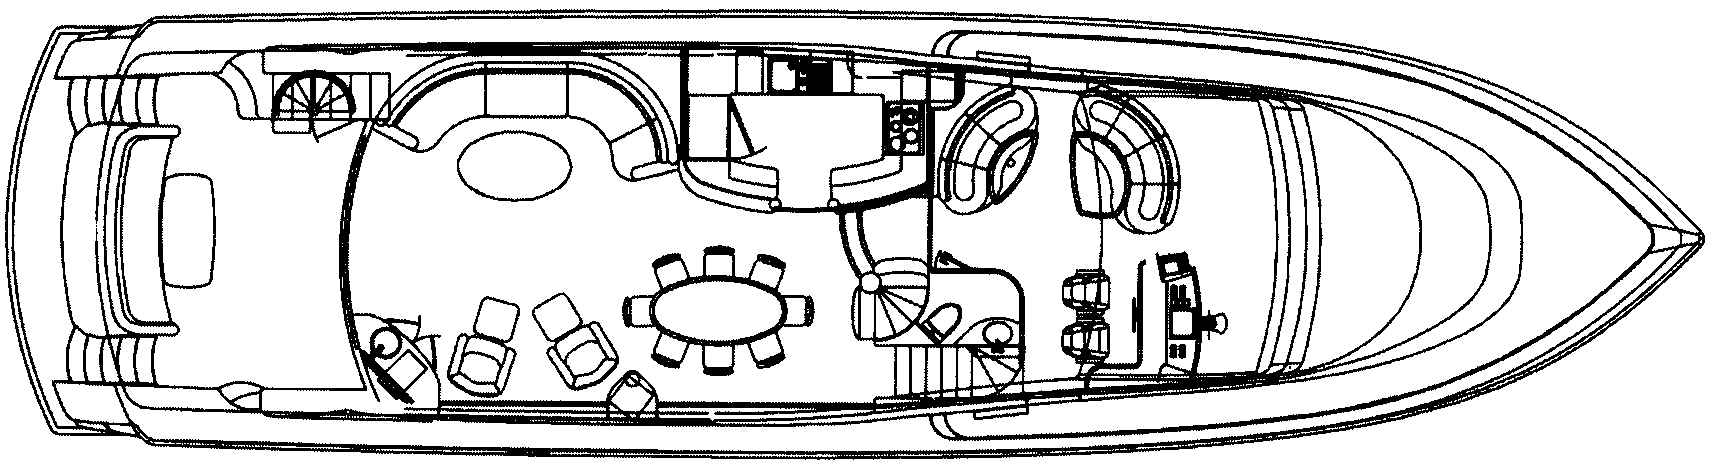 80 Motor Yacht Floor Plan 2